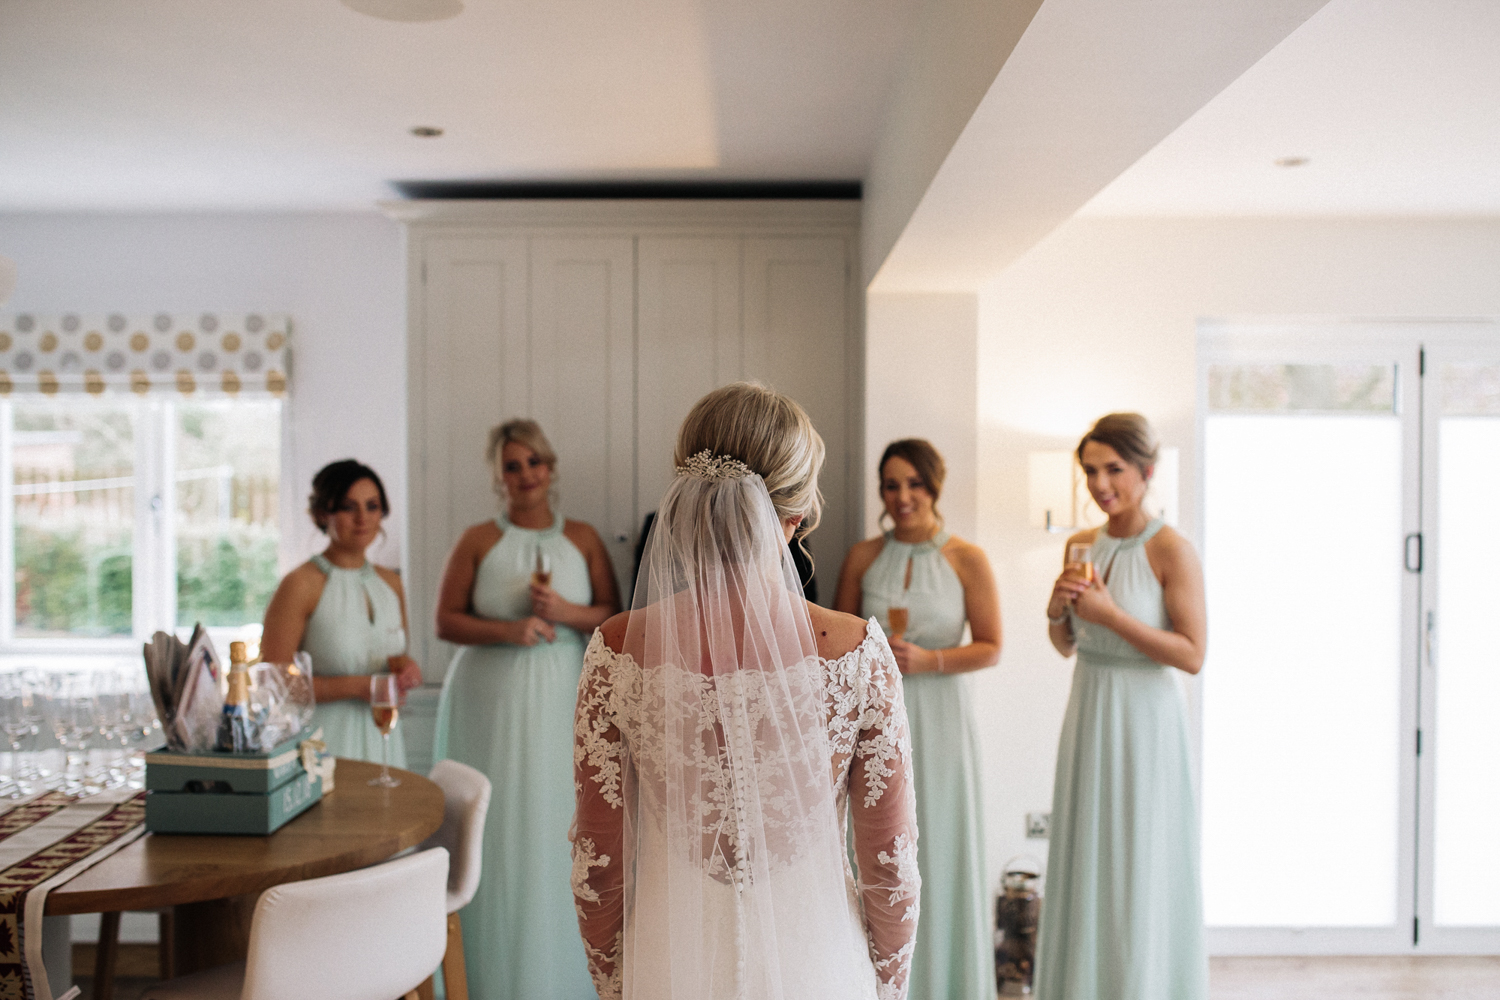 a bride stands in her dress in front of her bridesmaids. wedding at rudby hall north yorkshire venue. stop motion wedding films videos uk